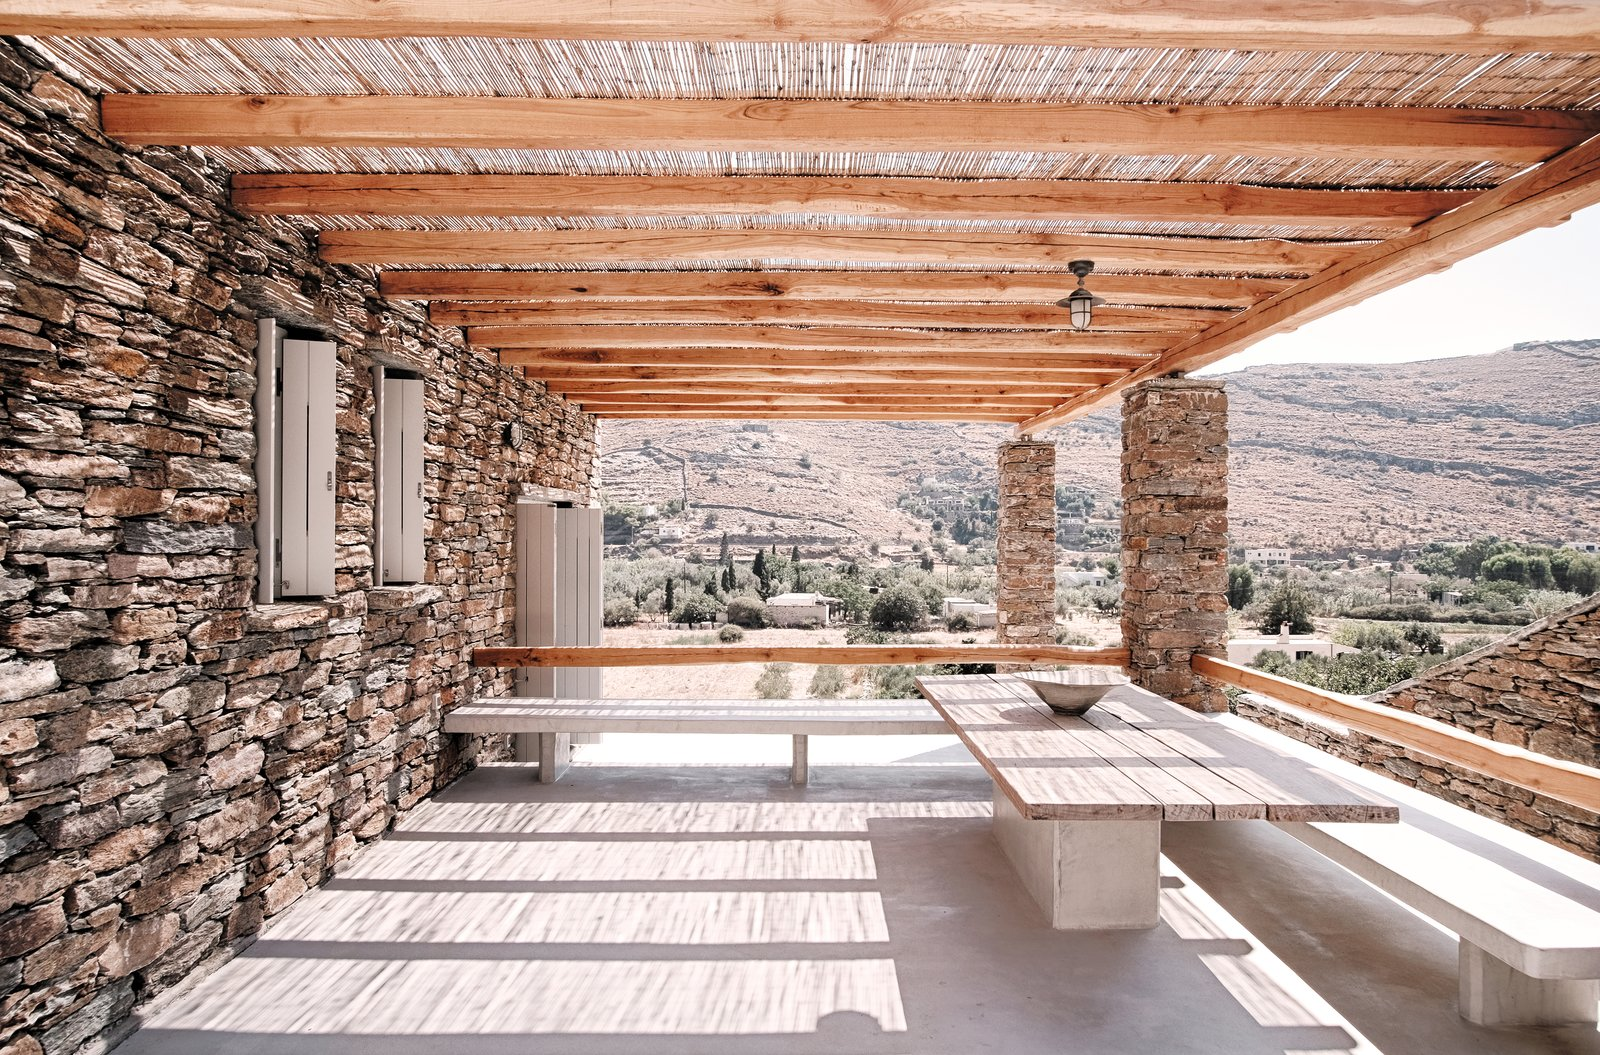 Outdoor, Back Yard, Desert, Small Patio, Porch, Deck, and Wood Patio, Porch, Deck Exterior eating area with views towards the valley  ROCKSPLIT house by COMETA ARCHITECTS